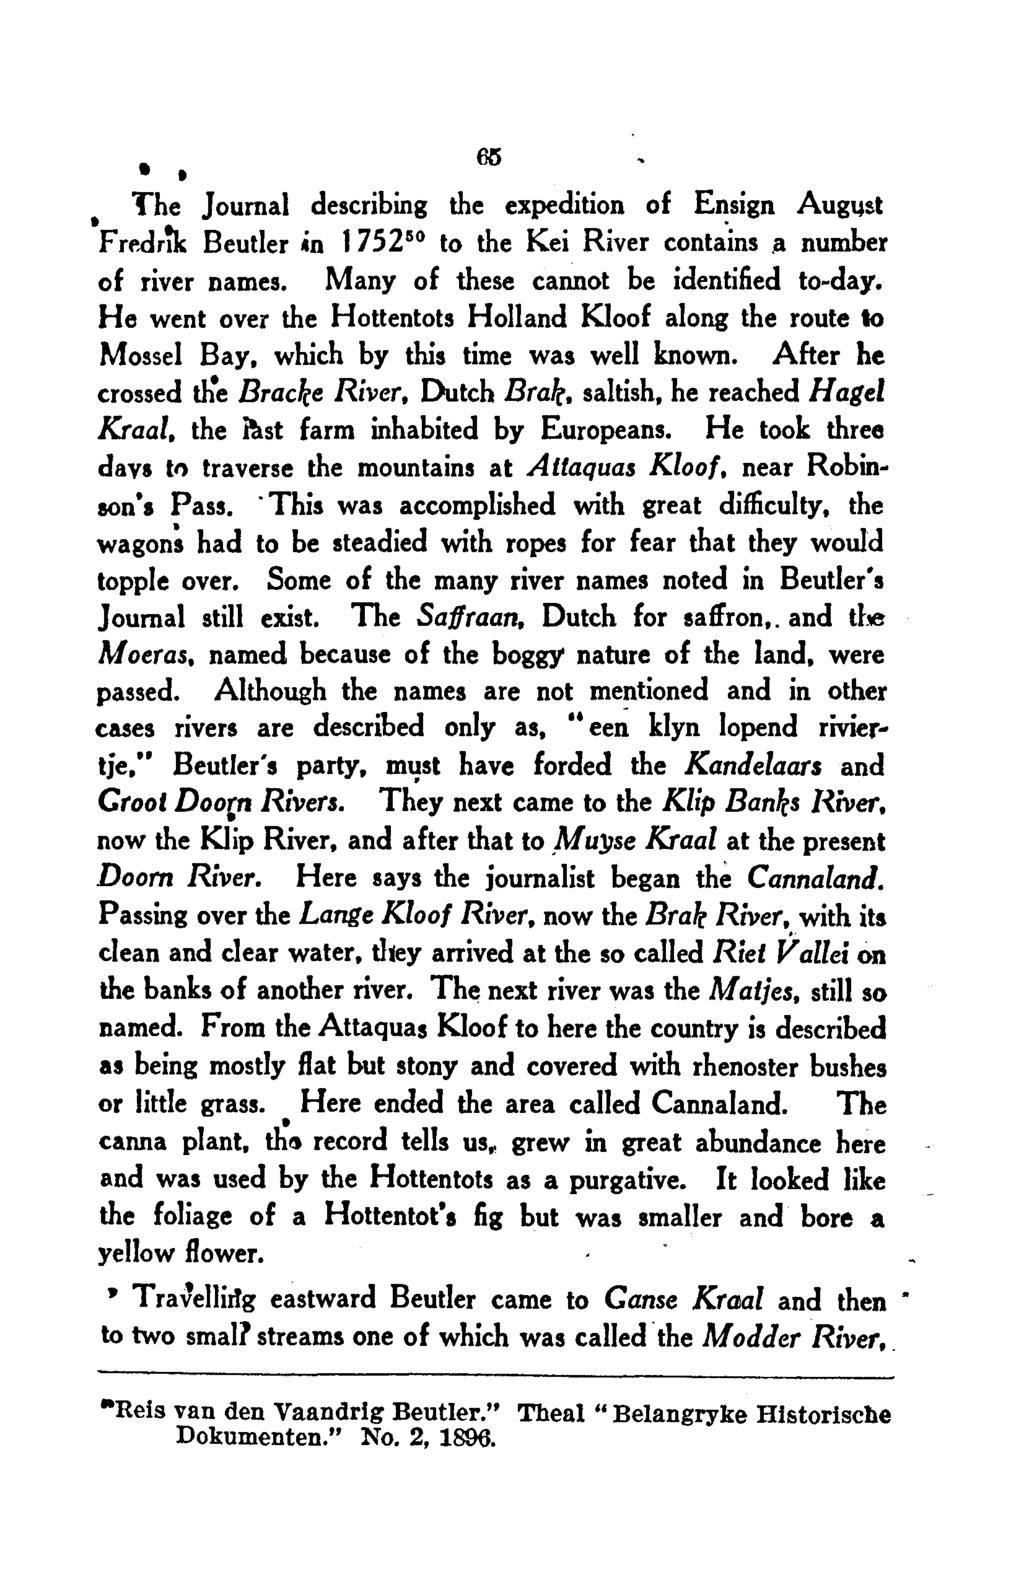 ".. The Journal describing the expedition of Ensign Augqst F rf"".dr~ Beutler in 1752 50 to the Kei River contains.a number of river names. Many of these cannot be identified to-day."